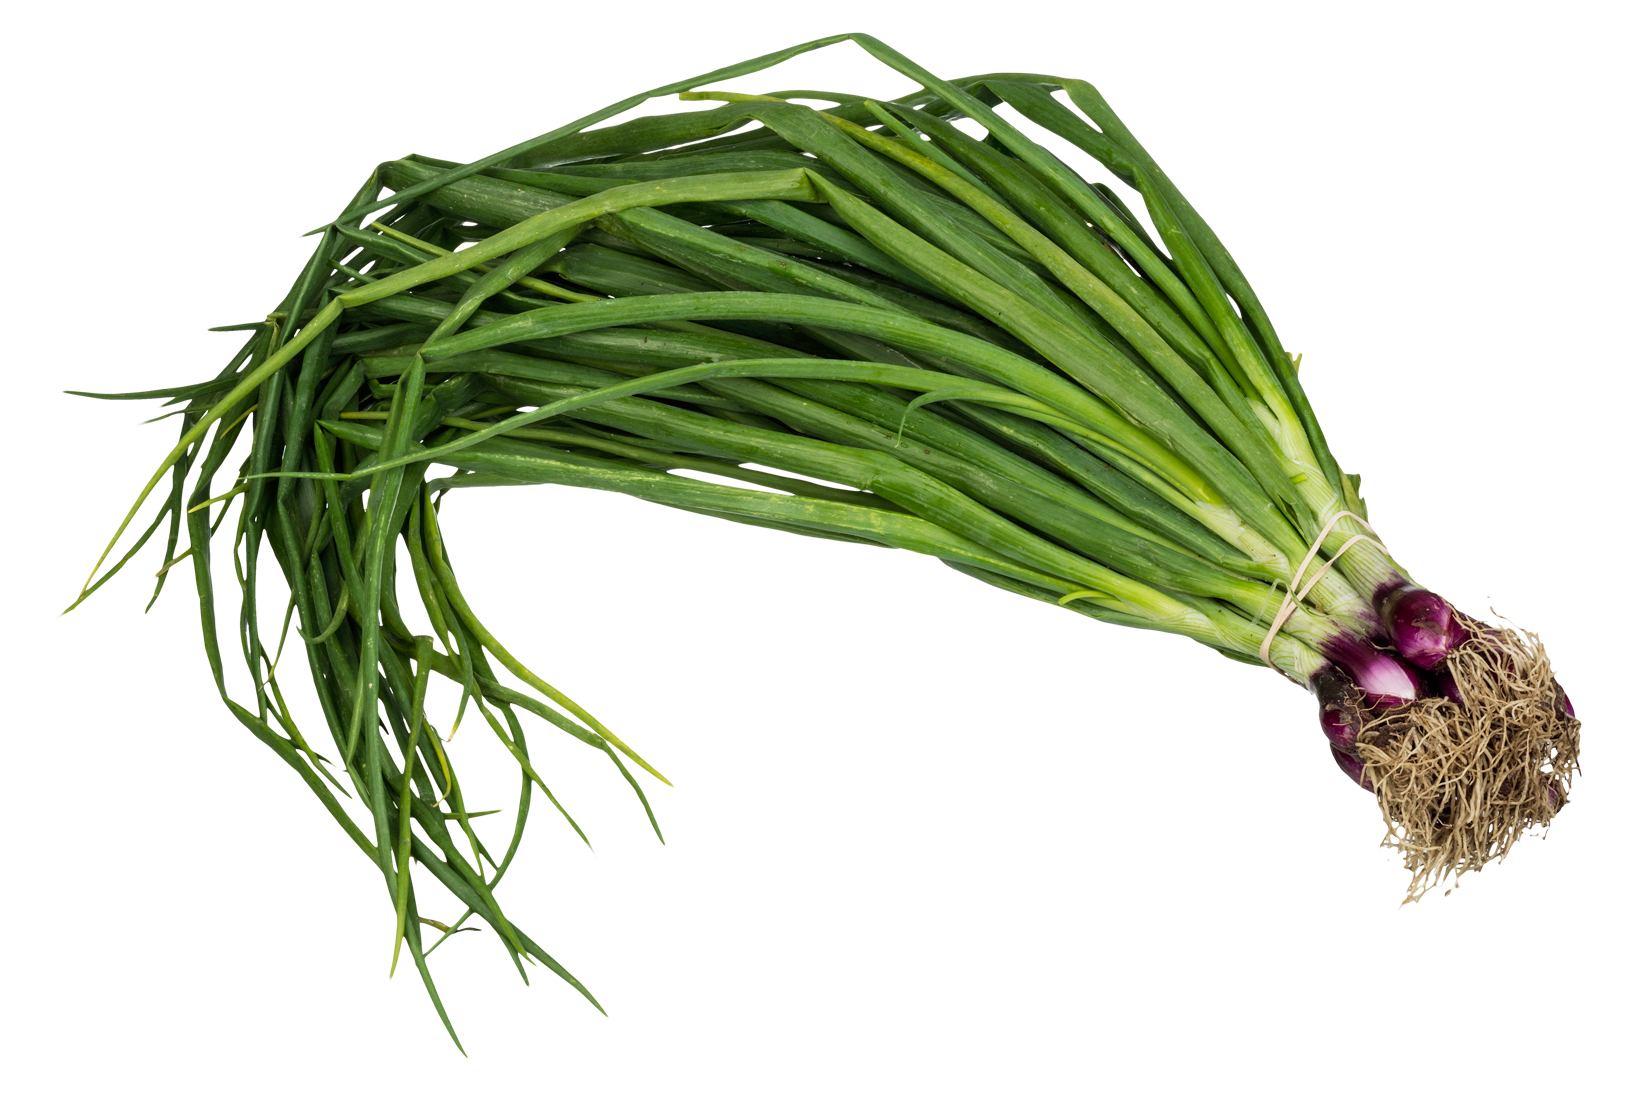 Green onions png. Scallion spring onion image